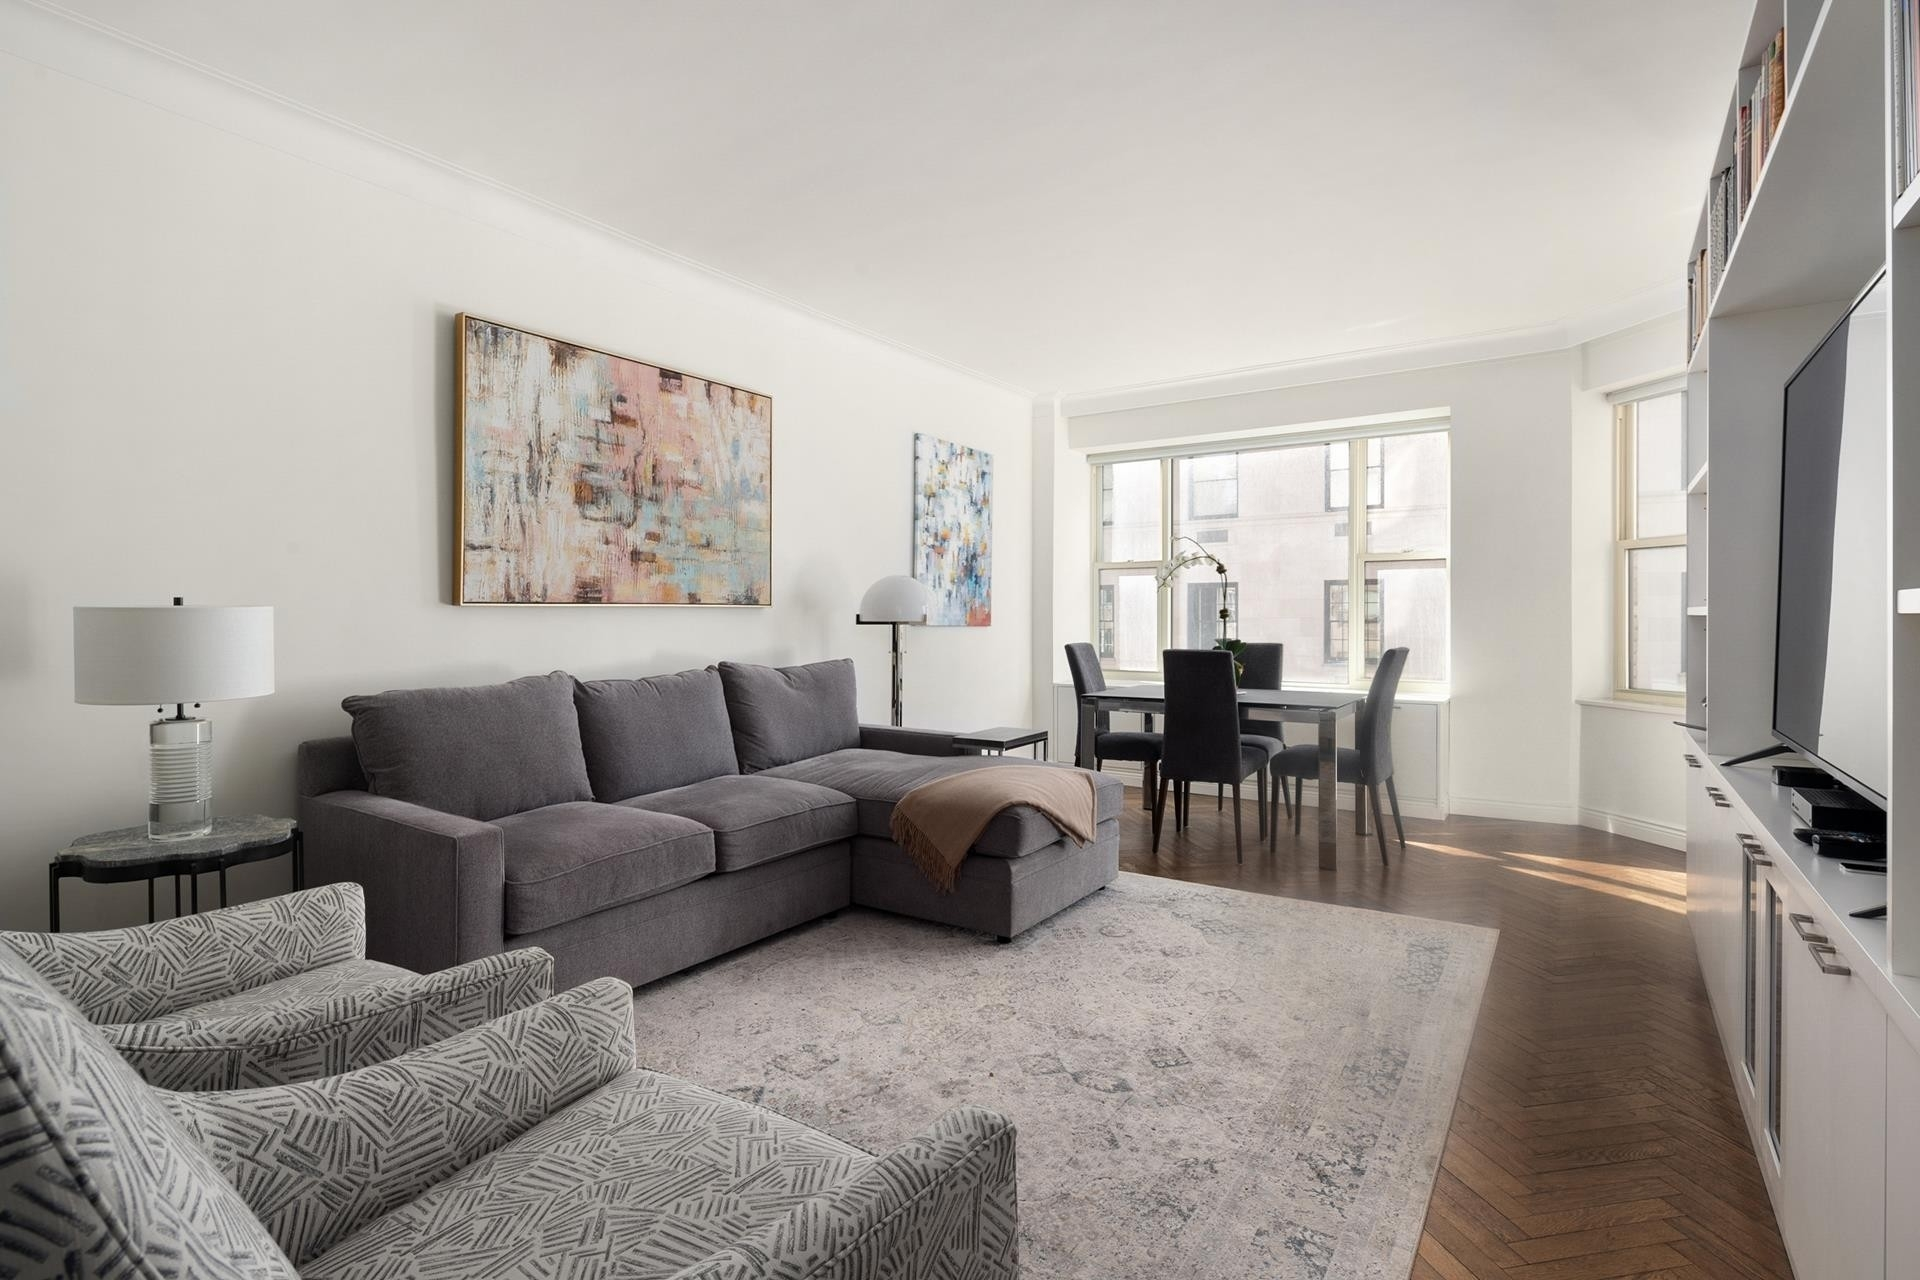 Property en 1 East 66th Street Corp., 1 East 66th St, 8E Lenox Hill, New York, NY 10021